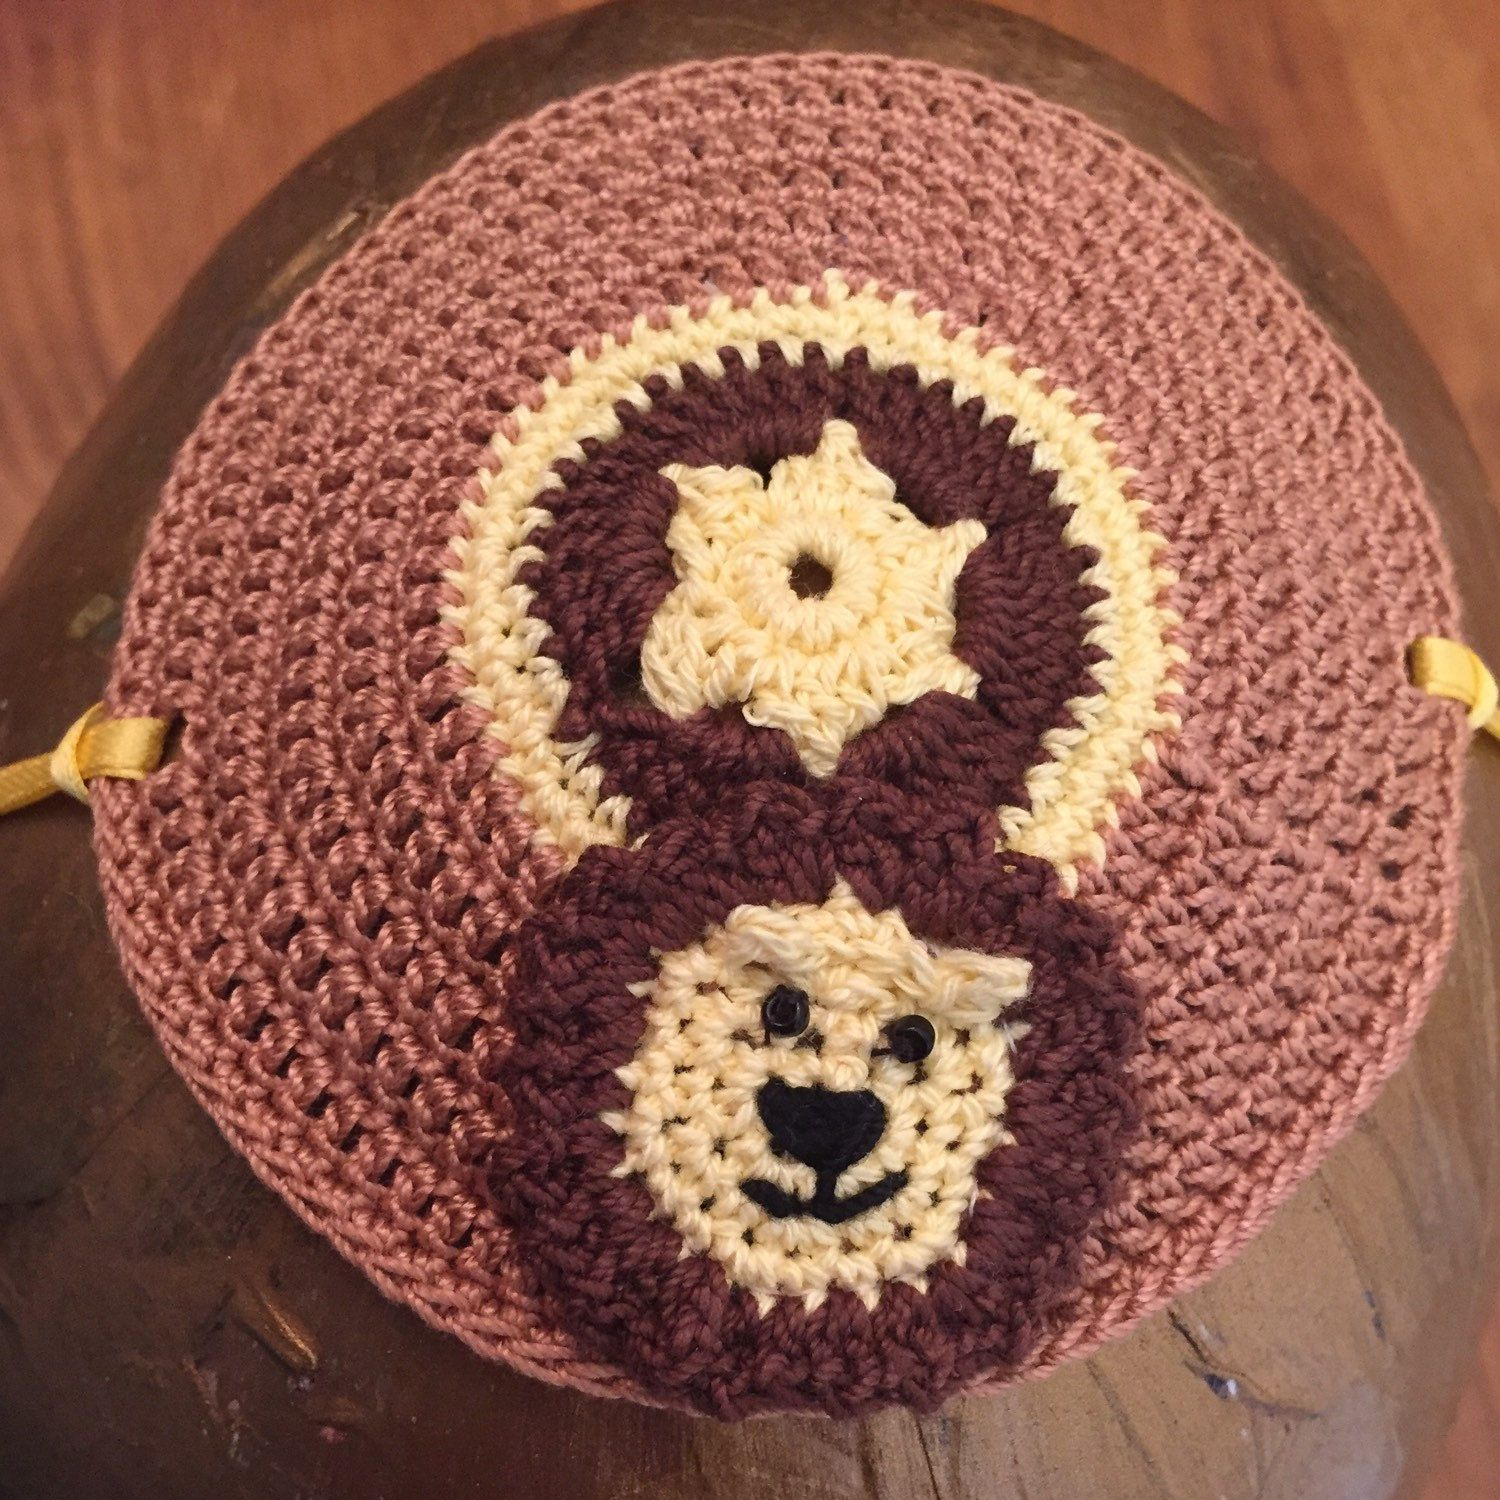 Fantastic Crochet Yarmulke Pattern Image Collection - Blanket ...